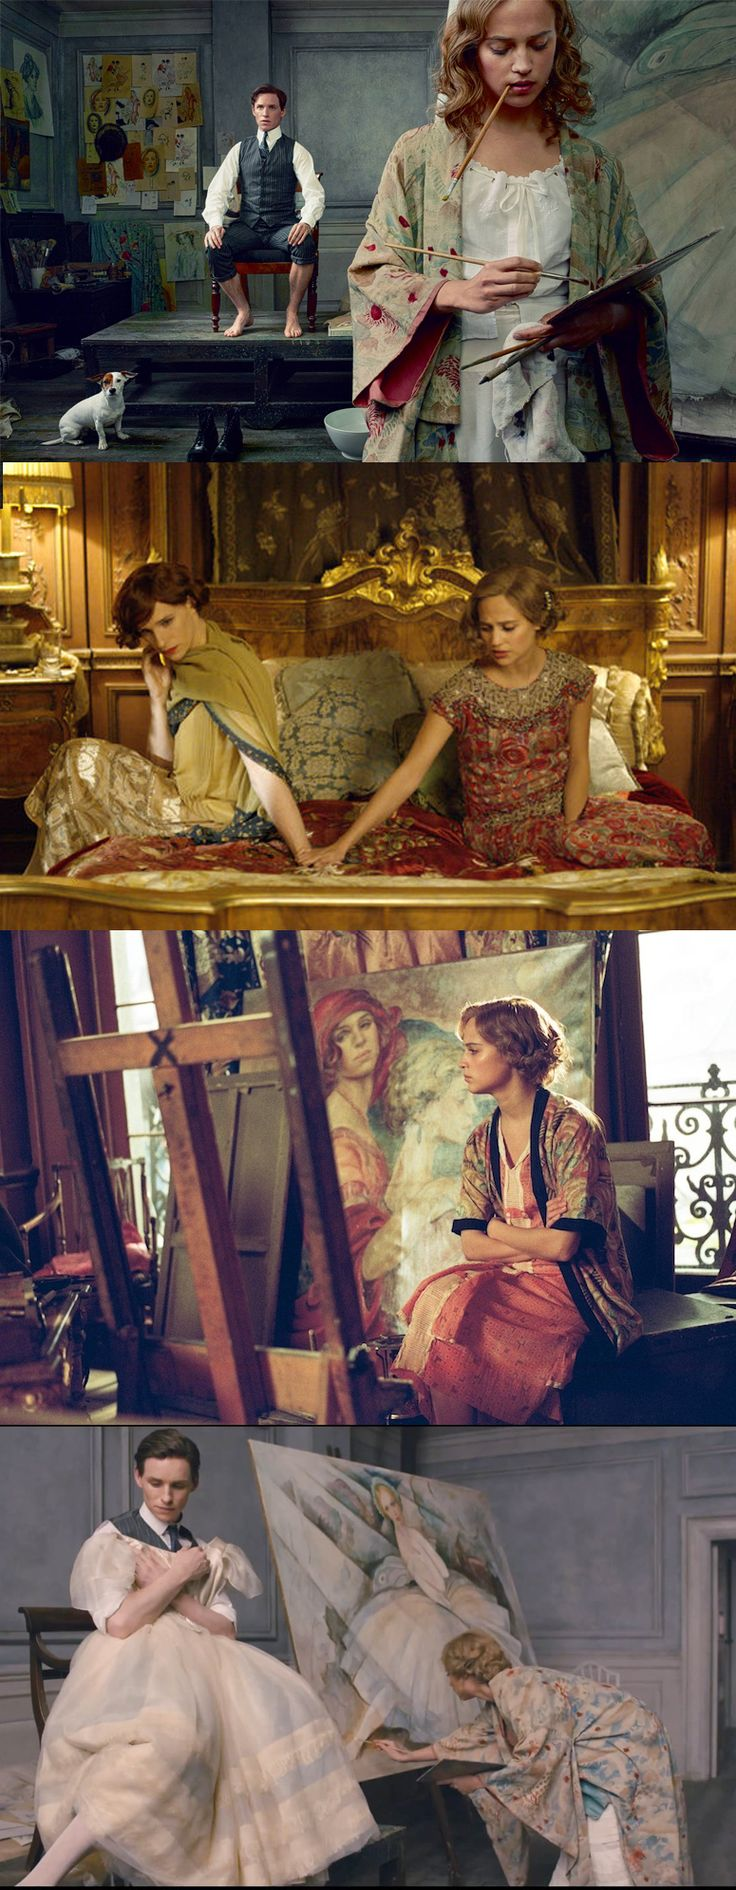 Eddie Redmayne and Alicia Vikander in 'The Danish Girl' (2015). Costume Designer: Paco Delgado